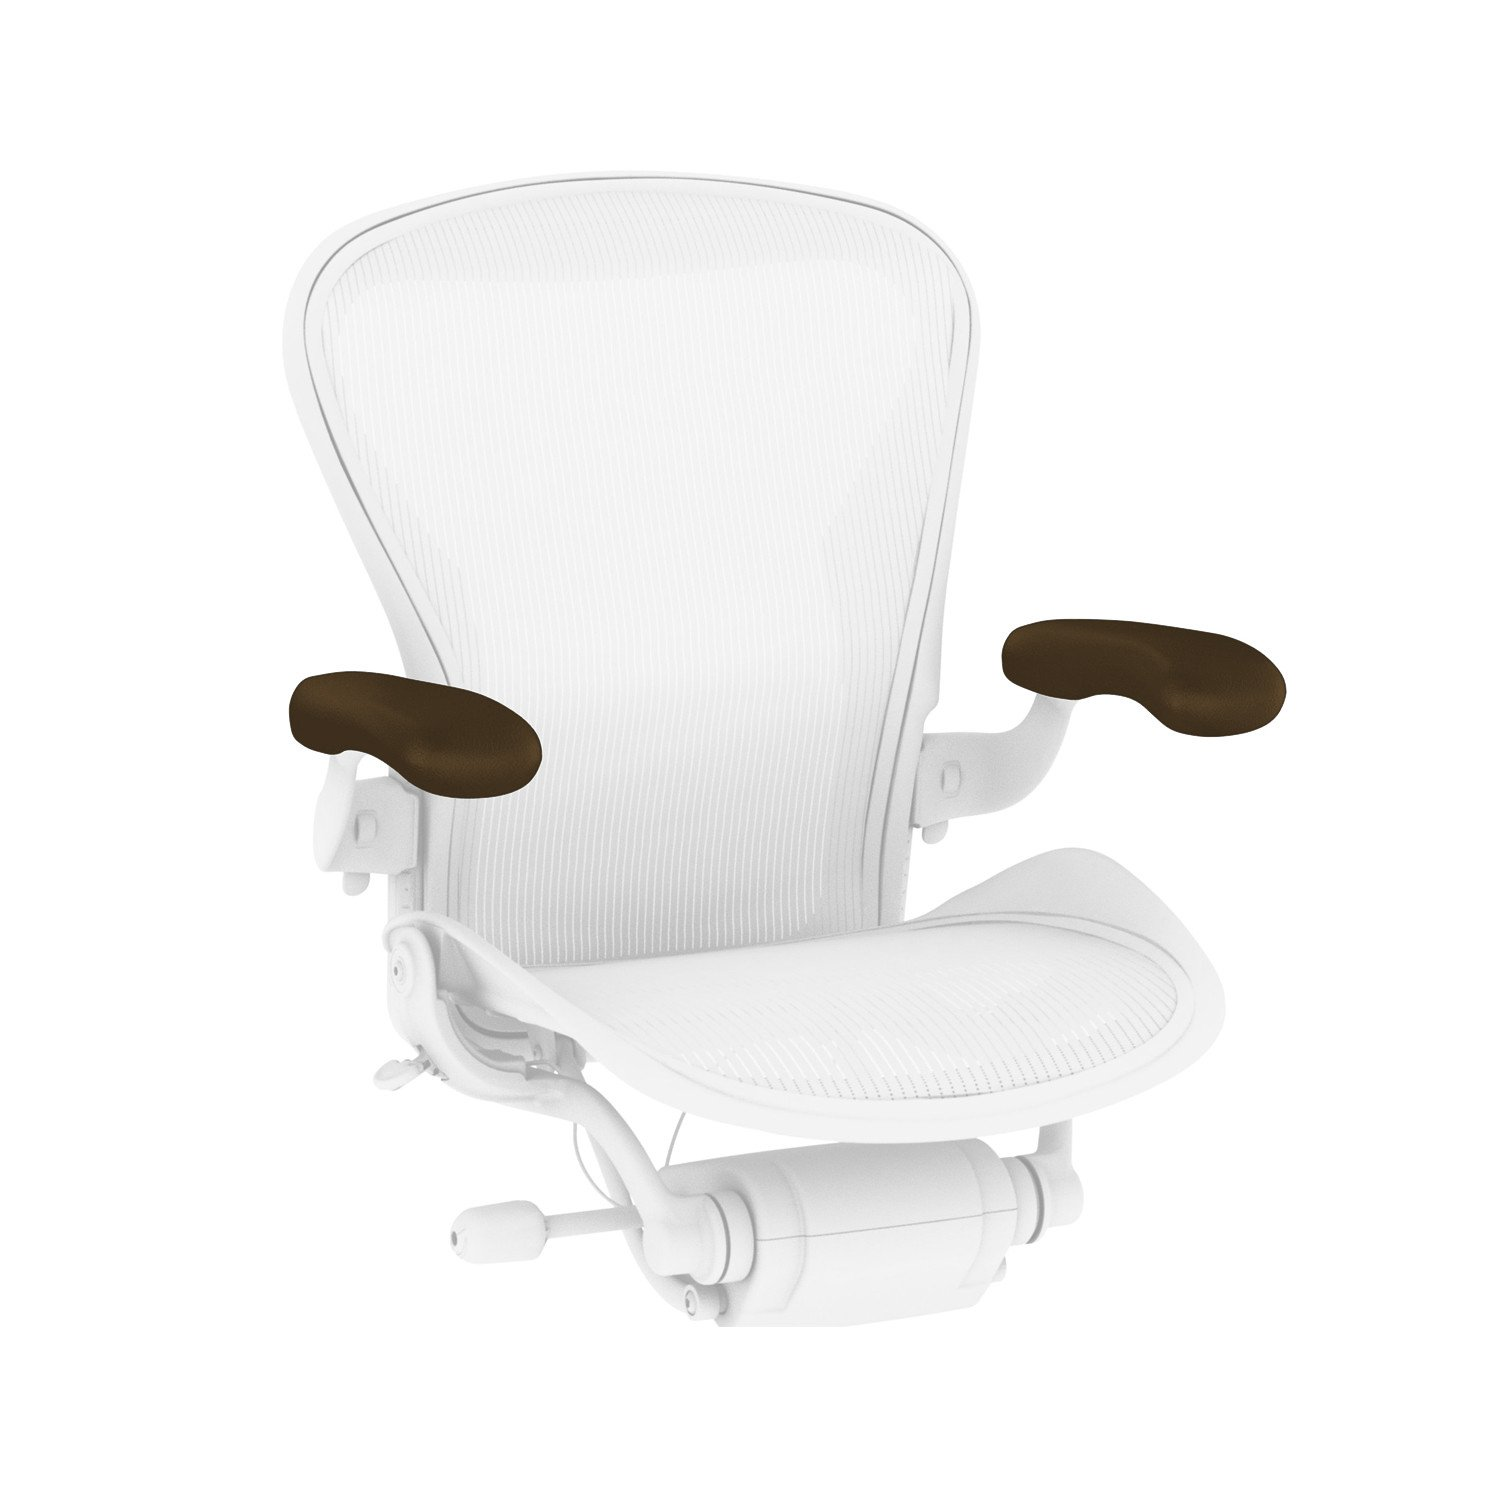 Herman Miller Leather Armpads for Classic Aeron Chair (2 Pack)